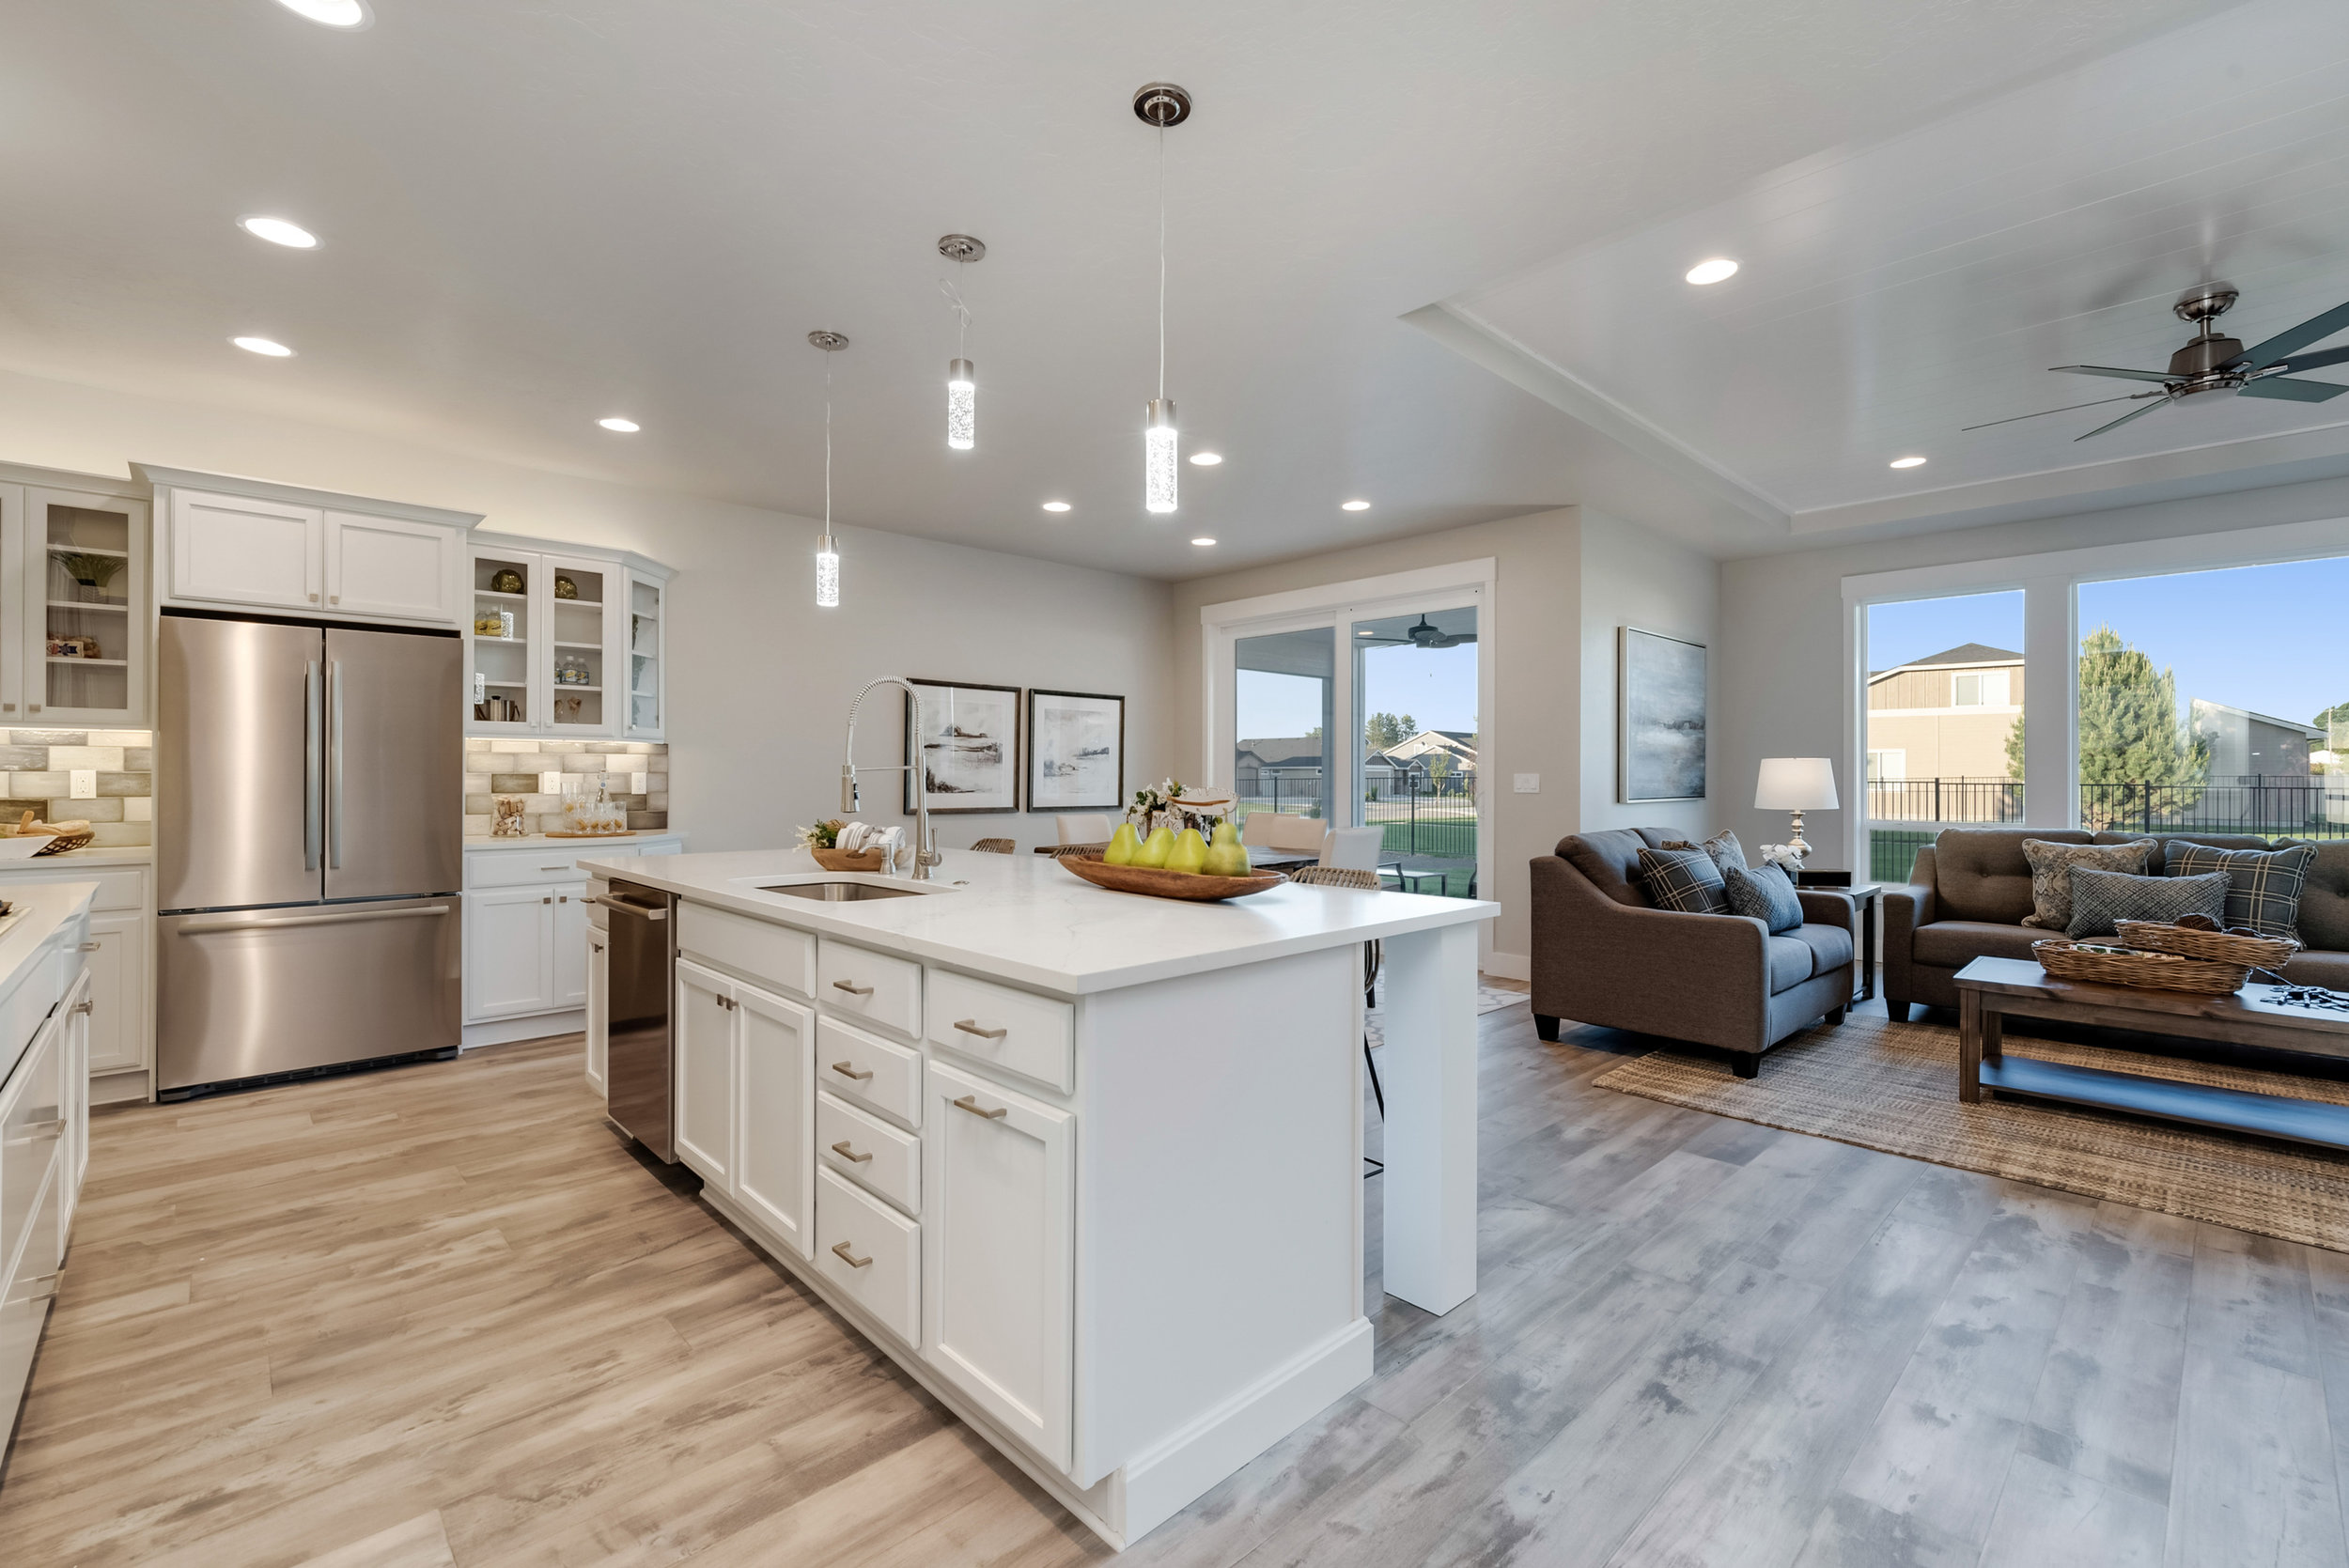 11-Kitchen to Great Room.jpg